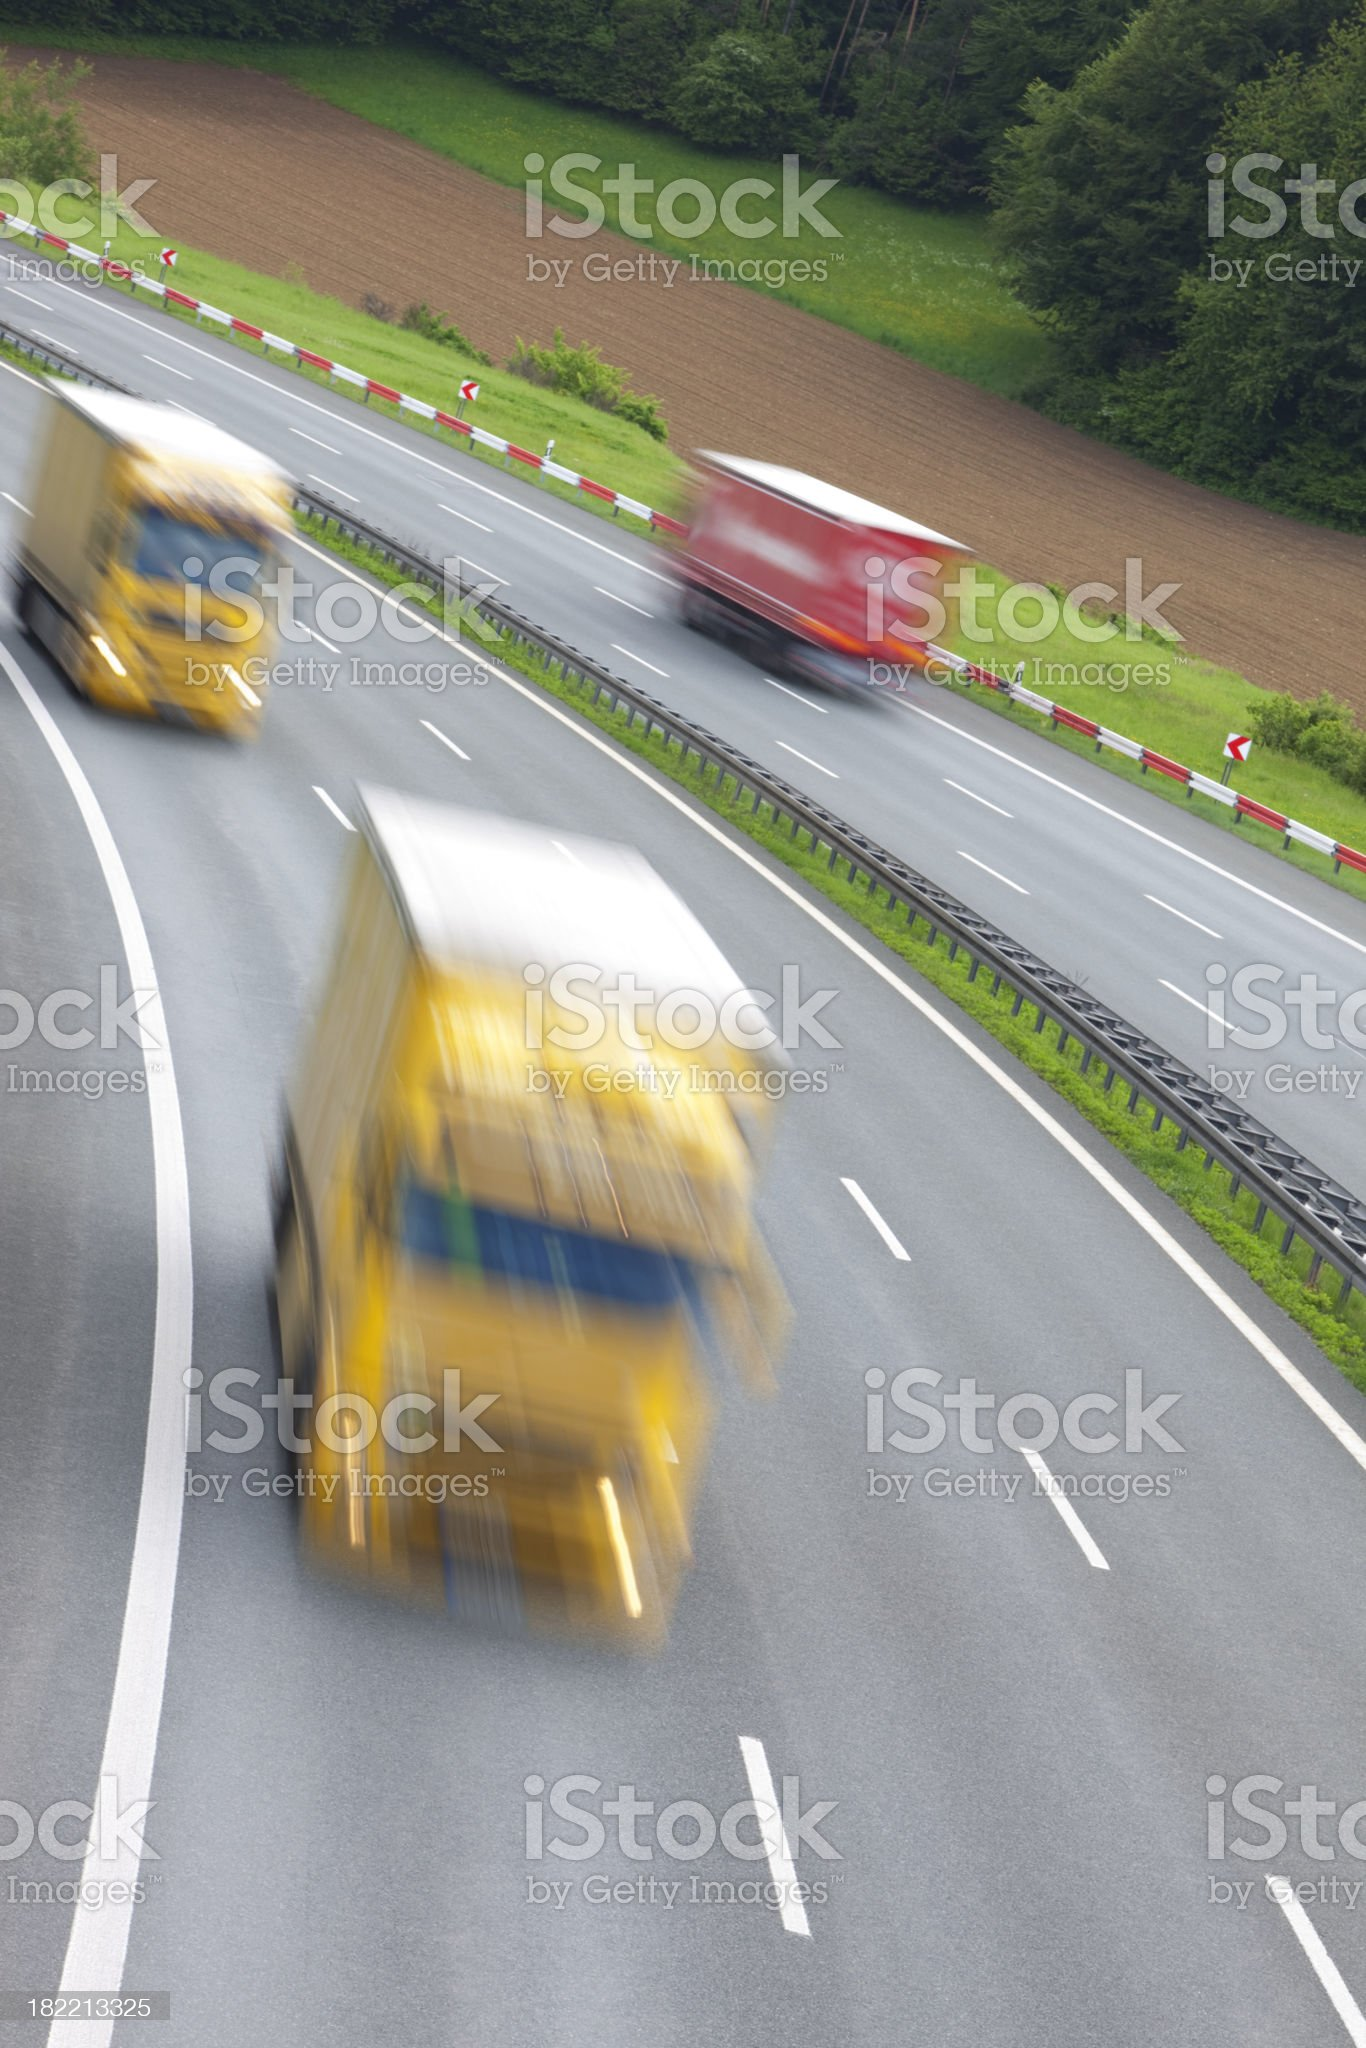 Trucks driving on highway, blurred motion, high angle view royalty-free stock photo